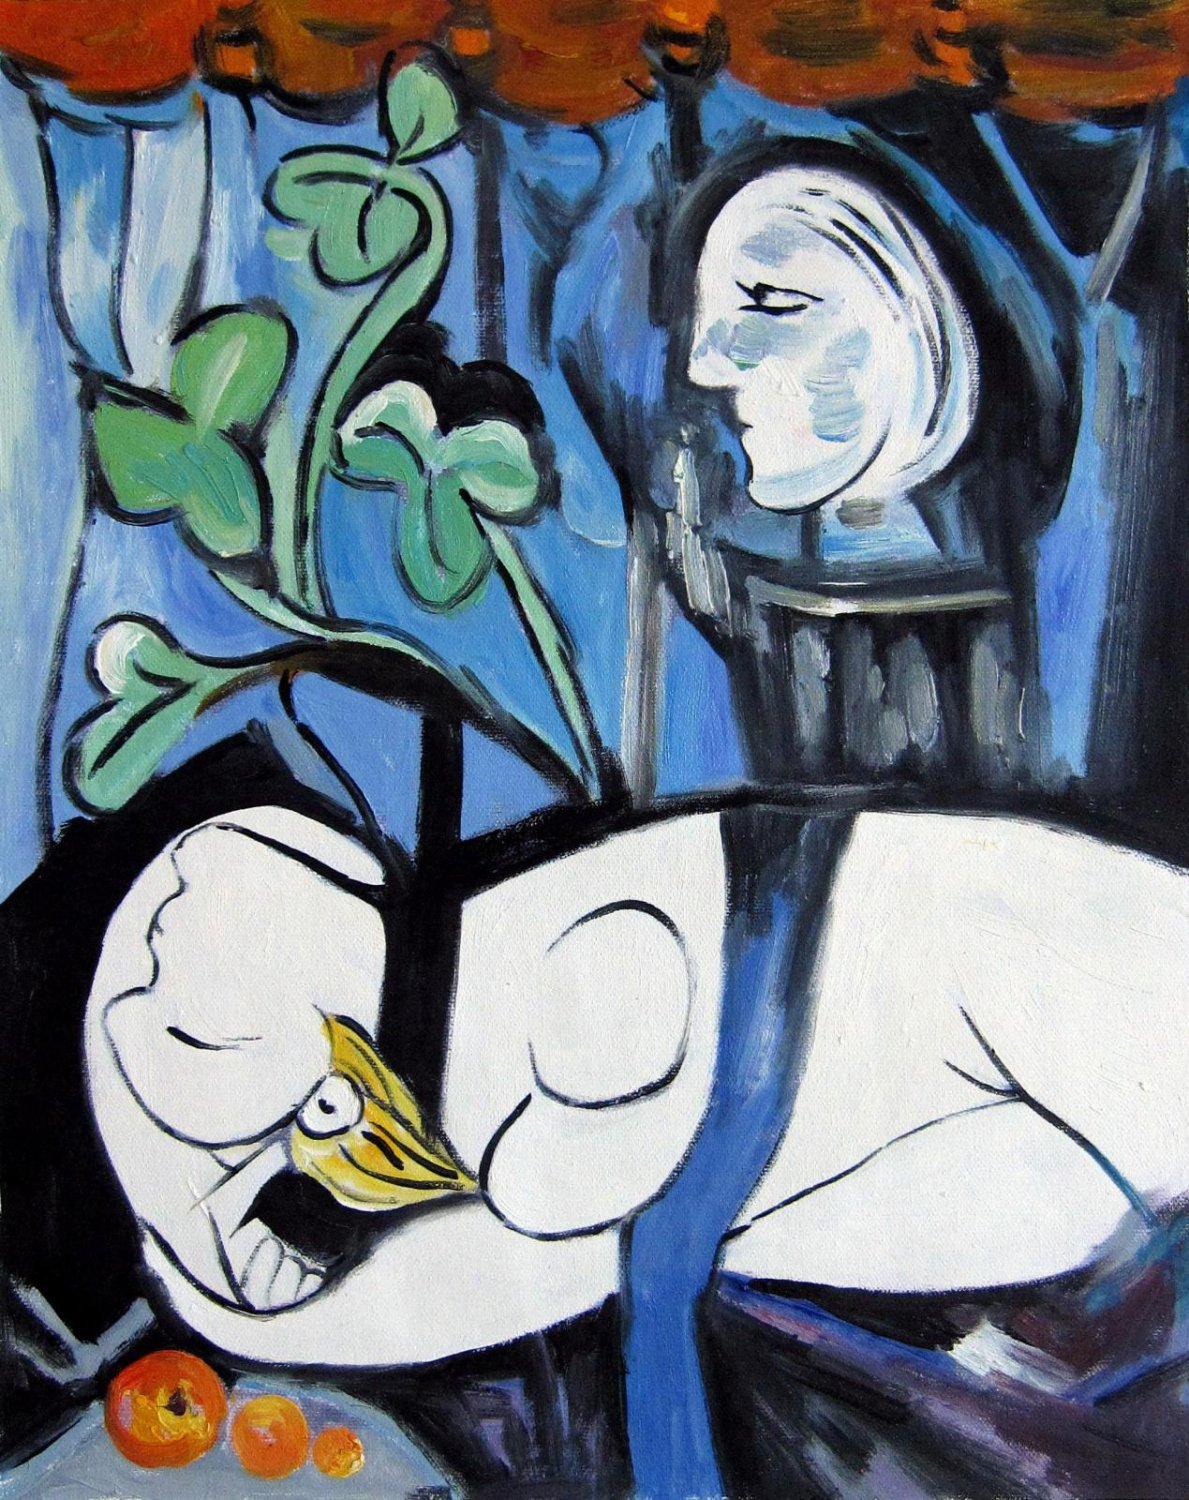 Rep. Pablo Picasso 16x20 in. stretched Oil Painting Canvas Art Wall Decor modern127